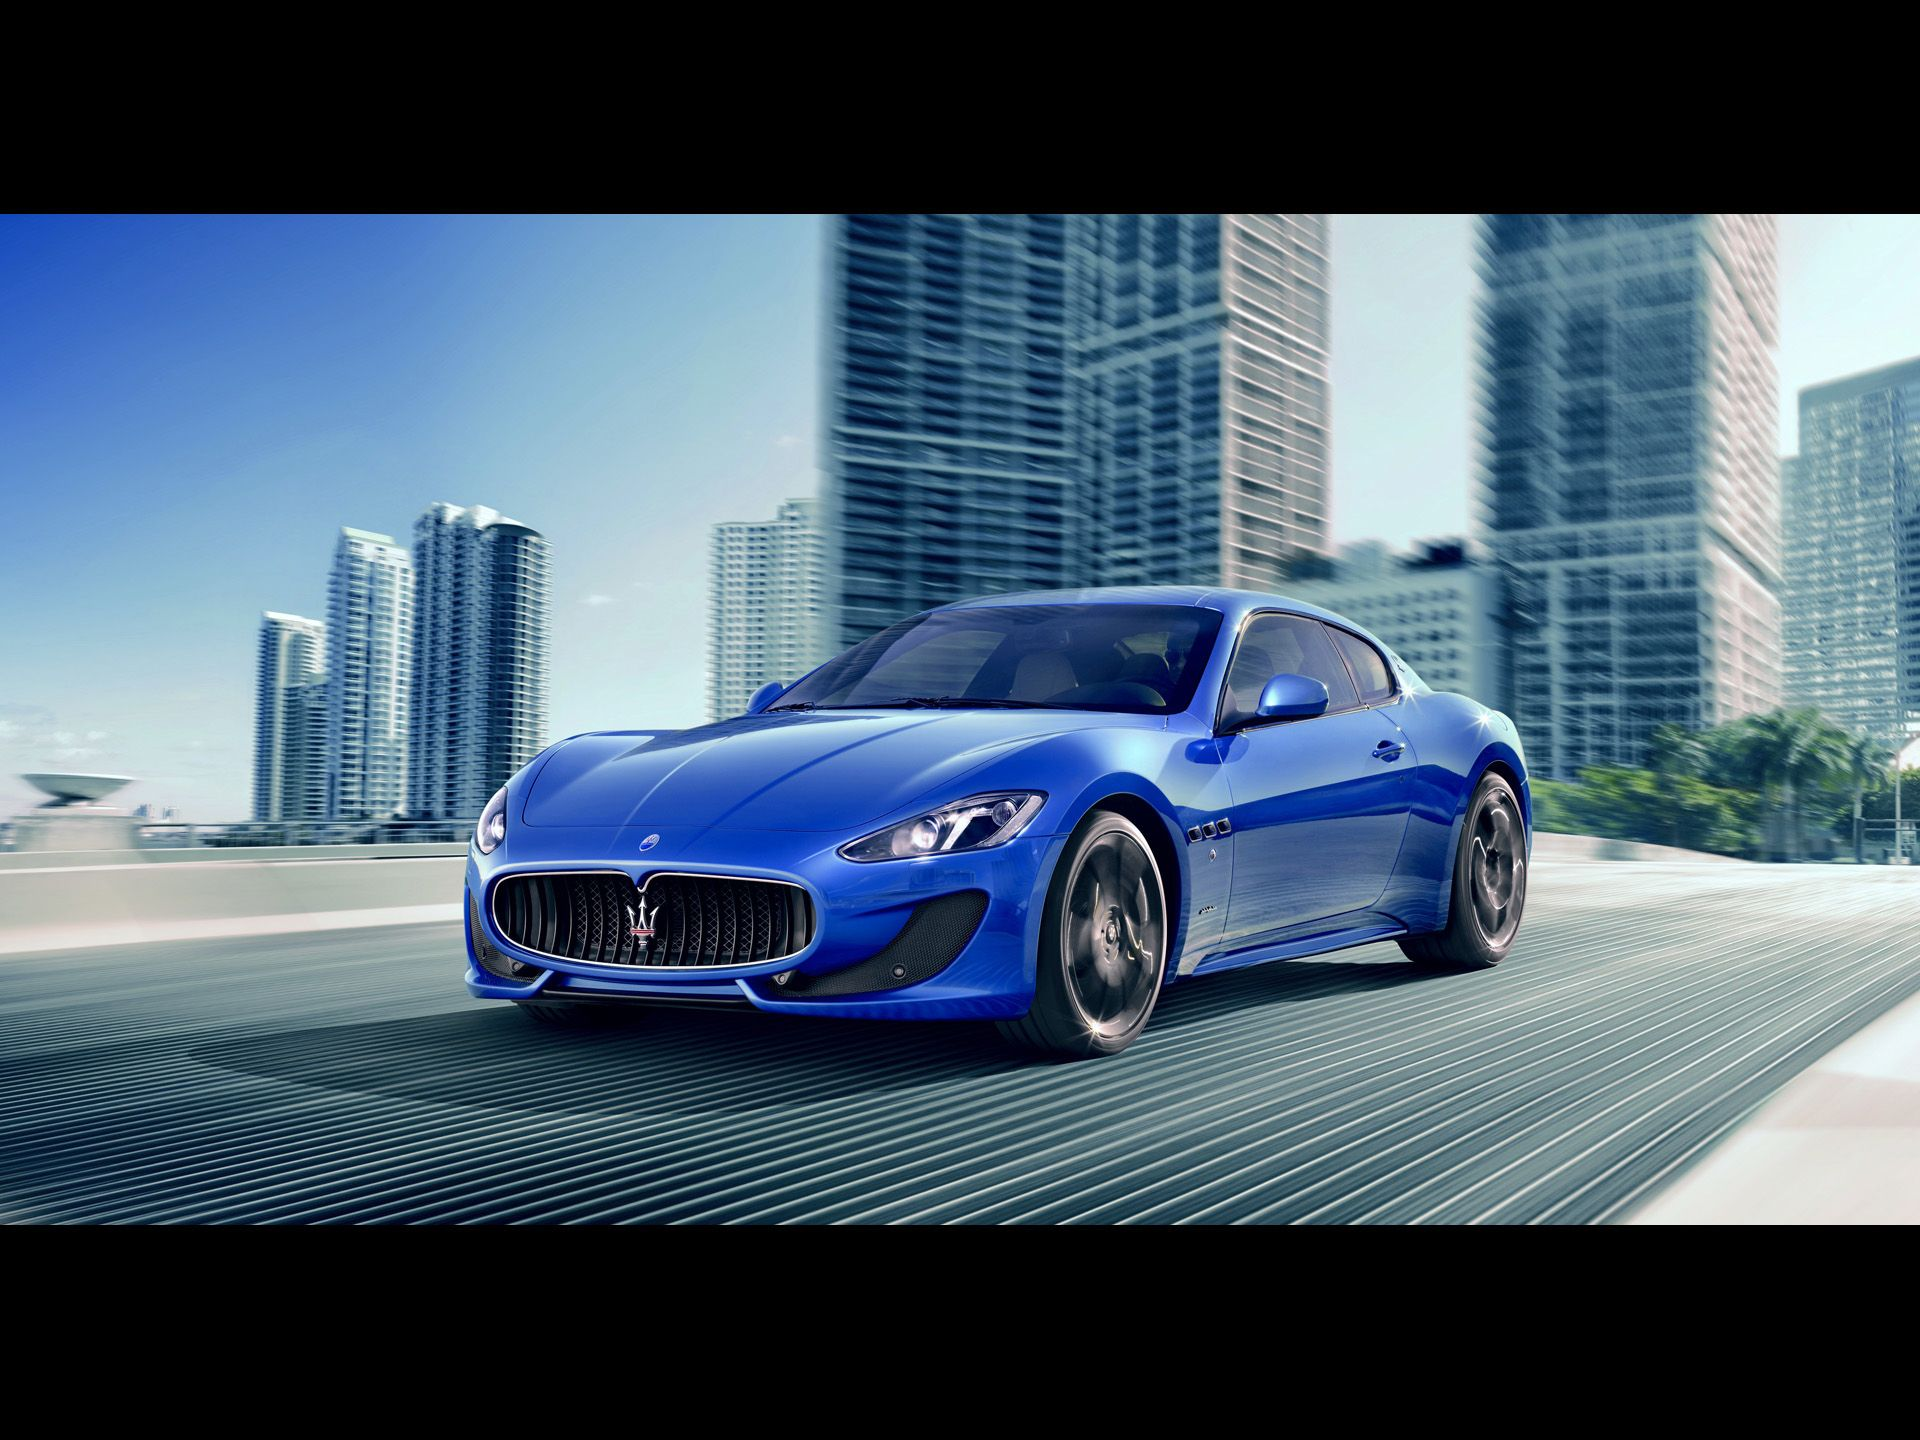 Marvelous Maserati GranTurismo Sport Right Angle Speed Wallpapers